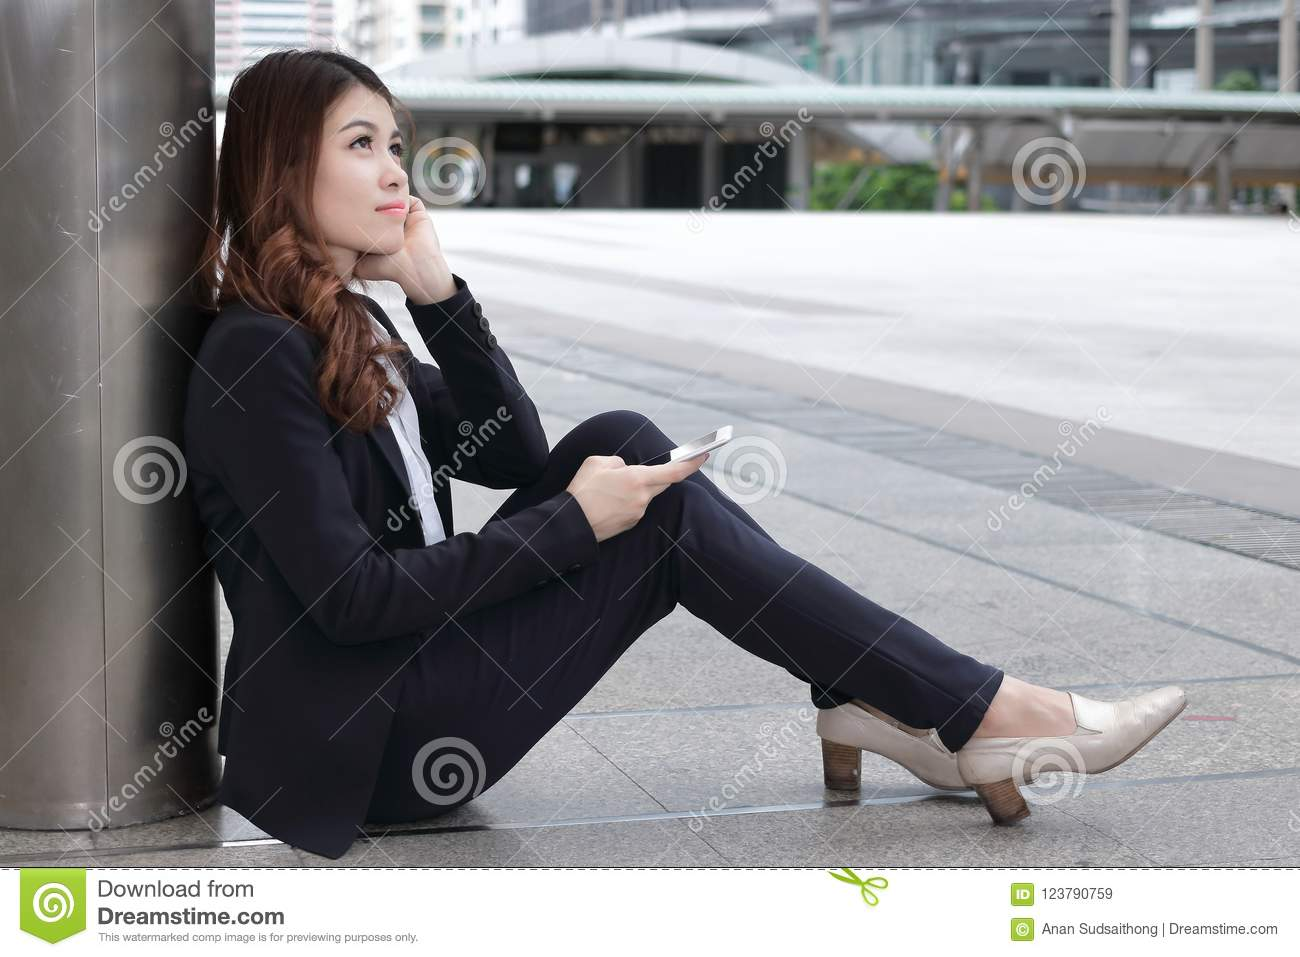 Rear view of attractive young Asian business woman in formal clothes sitting on floor and thinking about her job at urban with cop